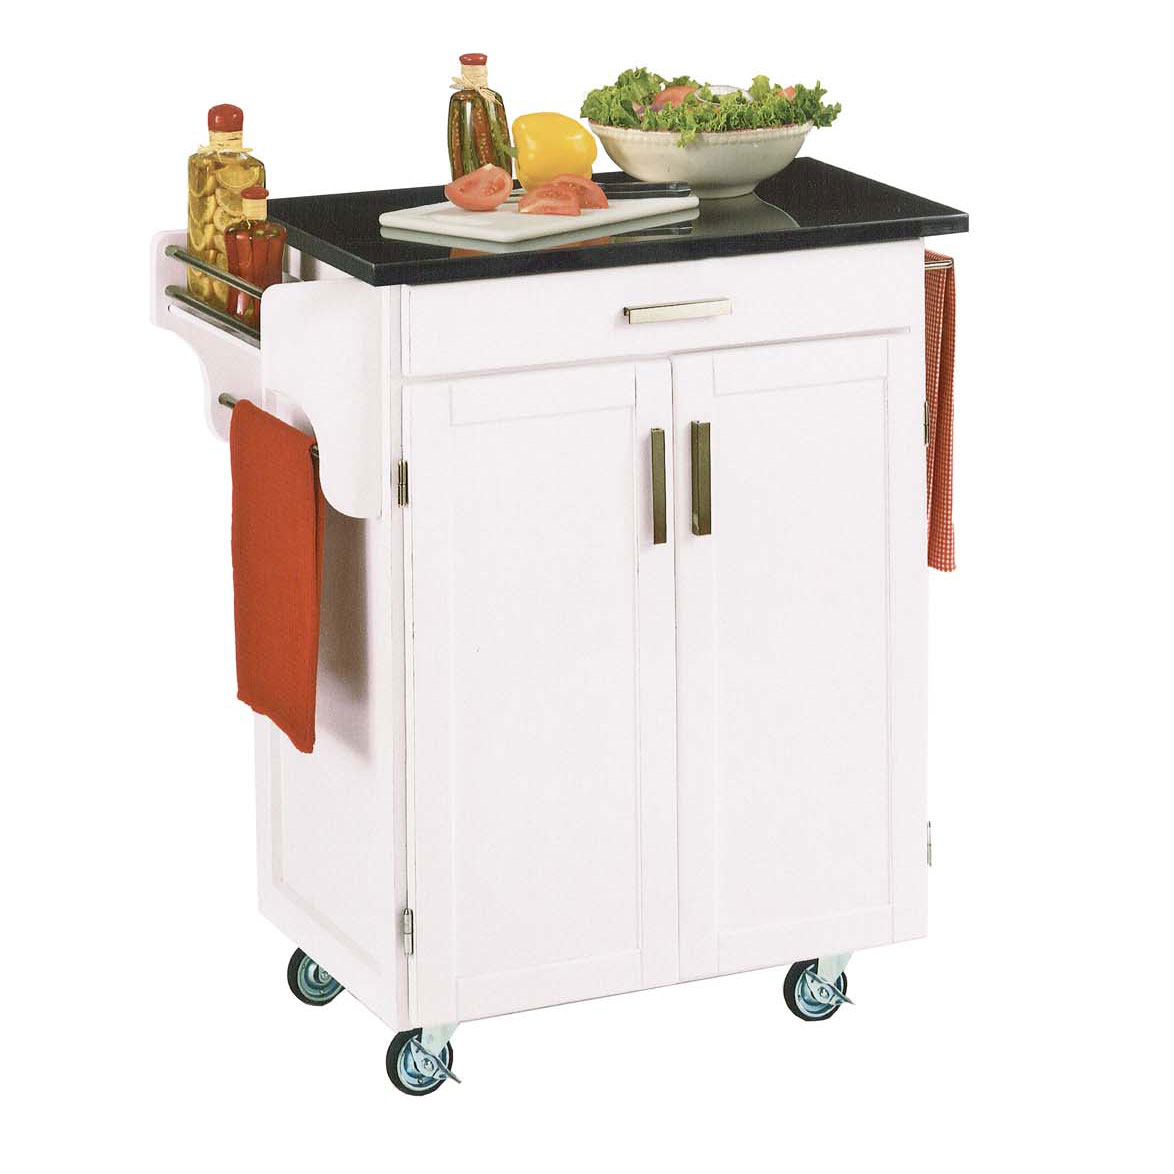 White Wood Cuisine Kitchen Cart with Black Granite Top, WHITE BLACK